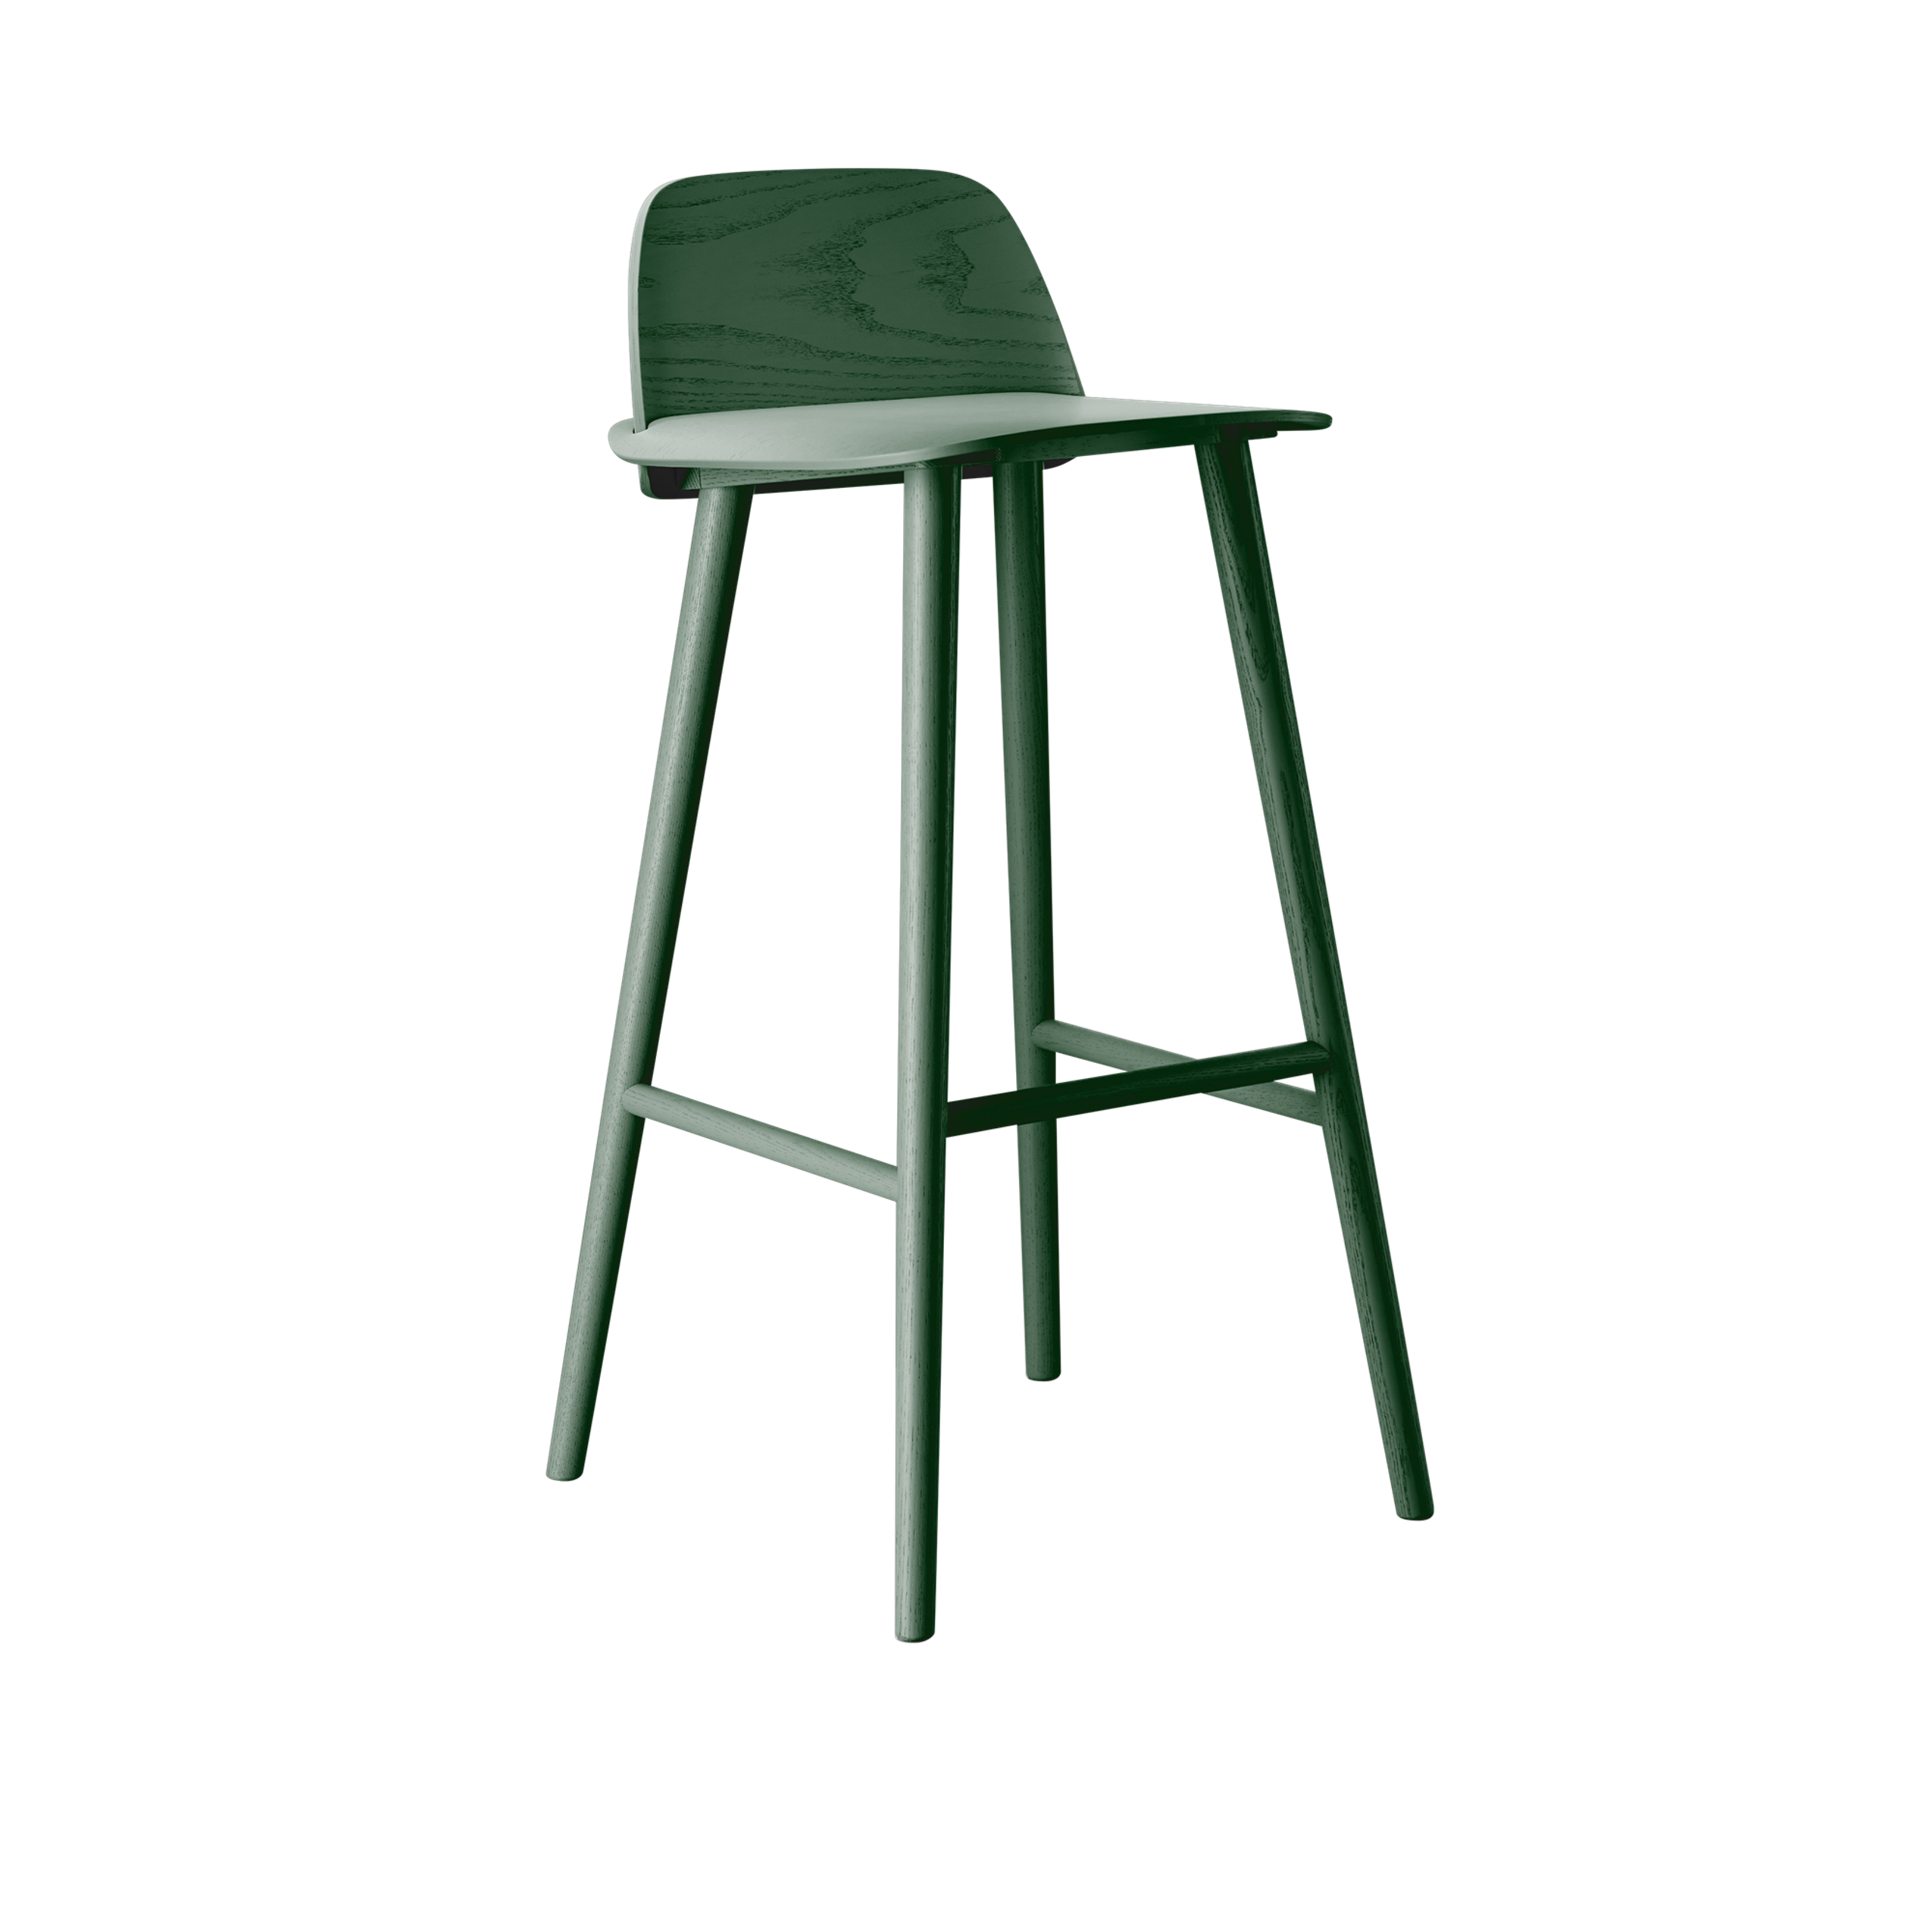 The Nerd Bar Stool is a quirky take on the conventional bar stool ...